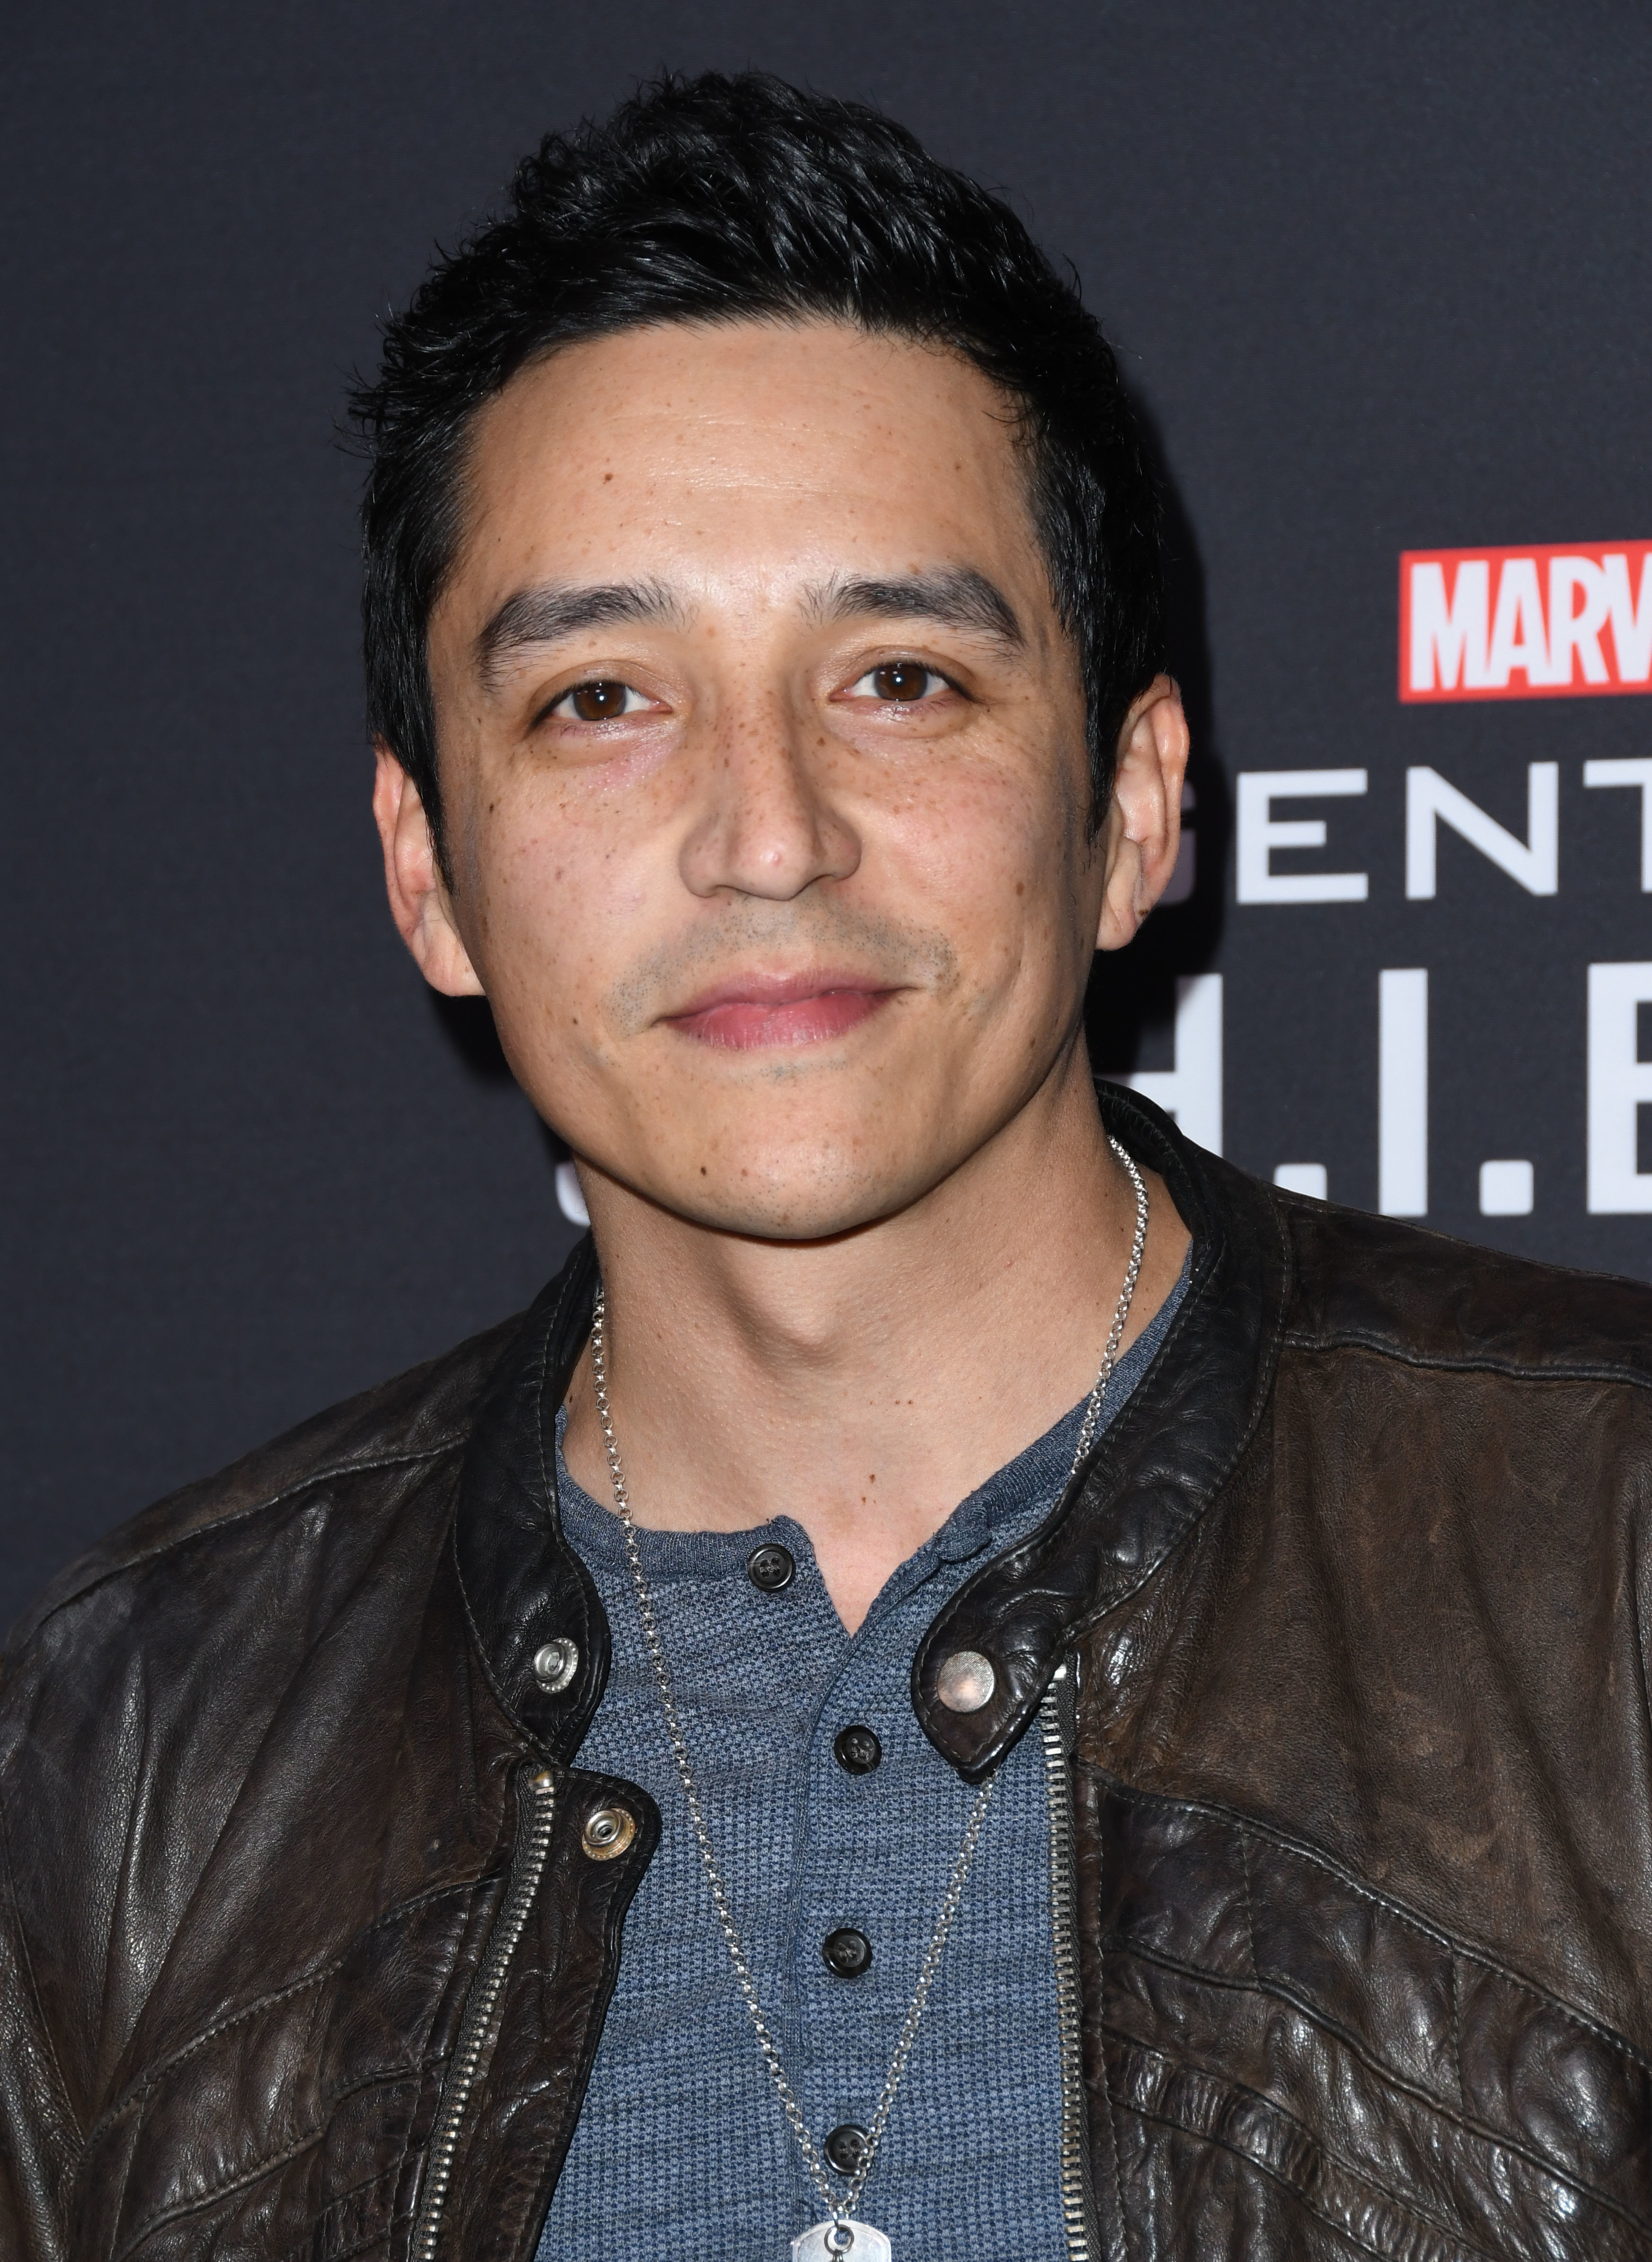 gabriel luna will play marvel's ghost rider in new live-action series